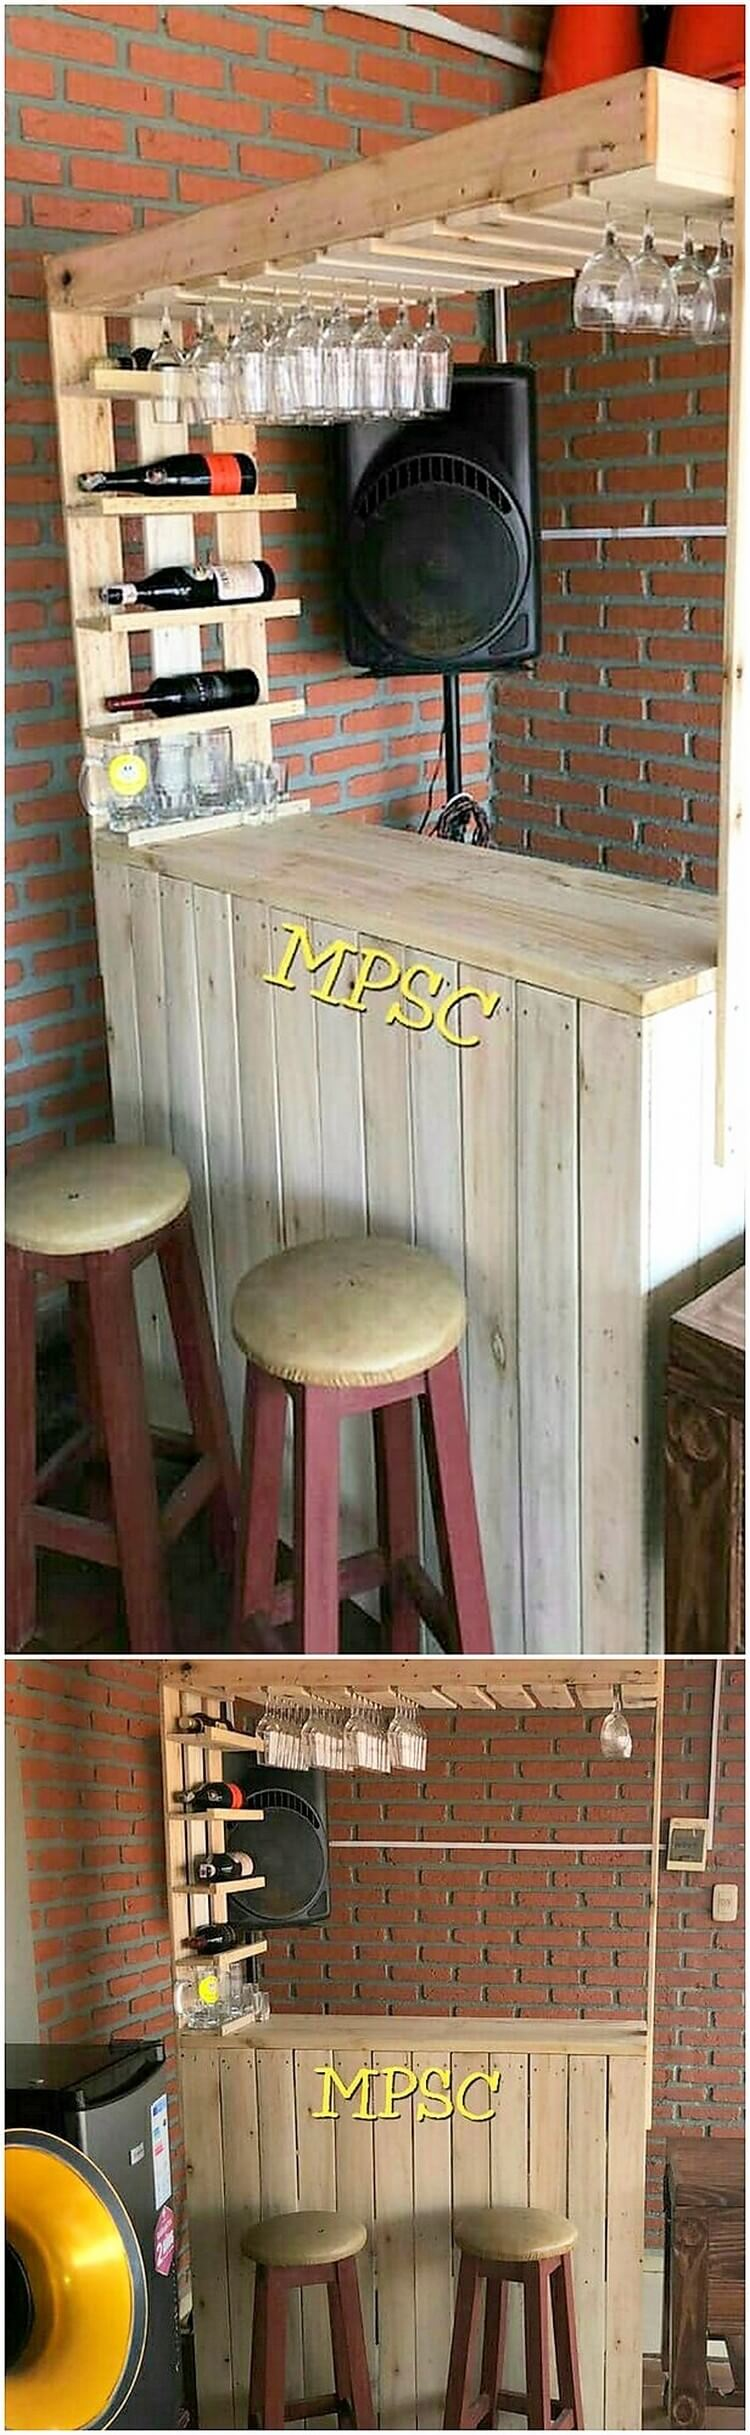 Inspiring Diy Wooden Pallet Ideas For Your House Wooden Pallet Ideas